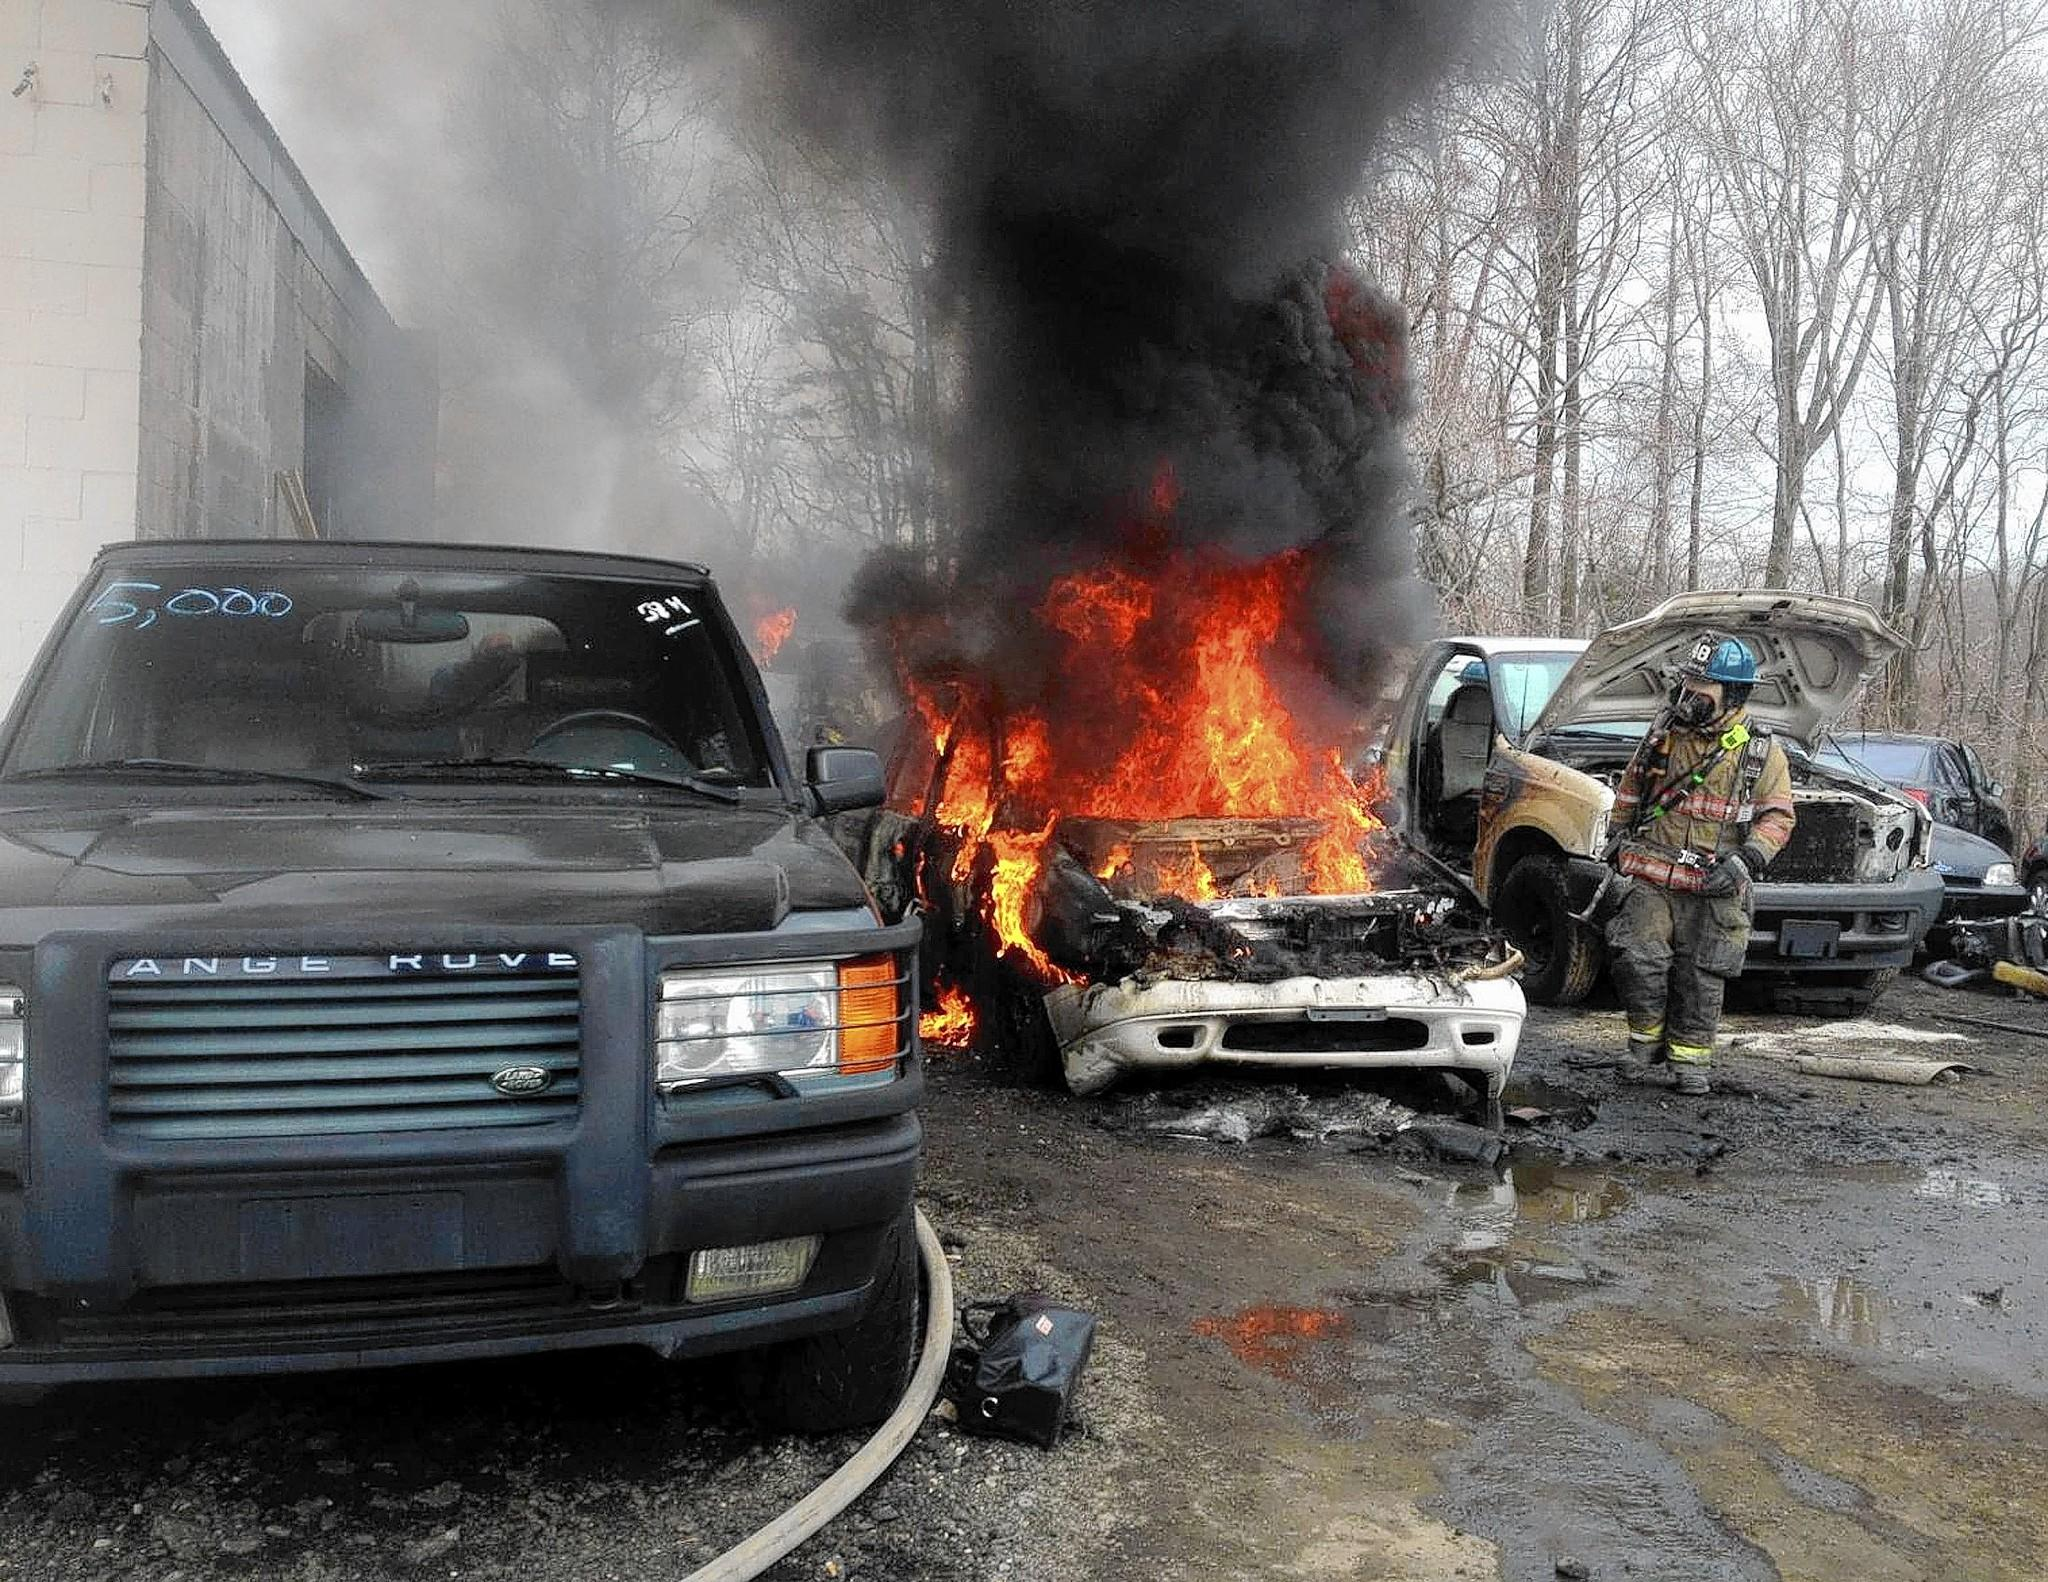 A car burns at Maryland Used Auto Parts. Firefighters from Harford and Baltimore counties were called to a fire that damaged two vehicles at an auto sales and service business in Joppa Monday afternoon.